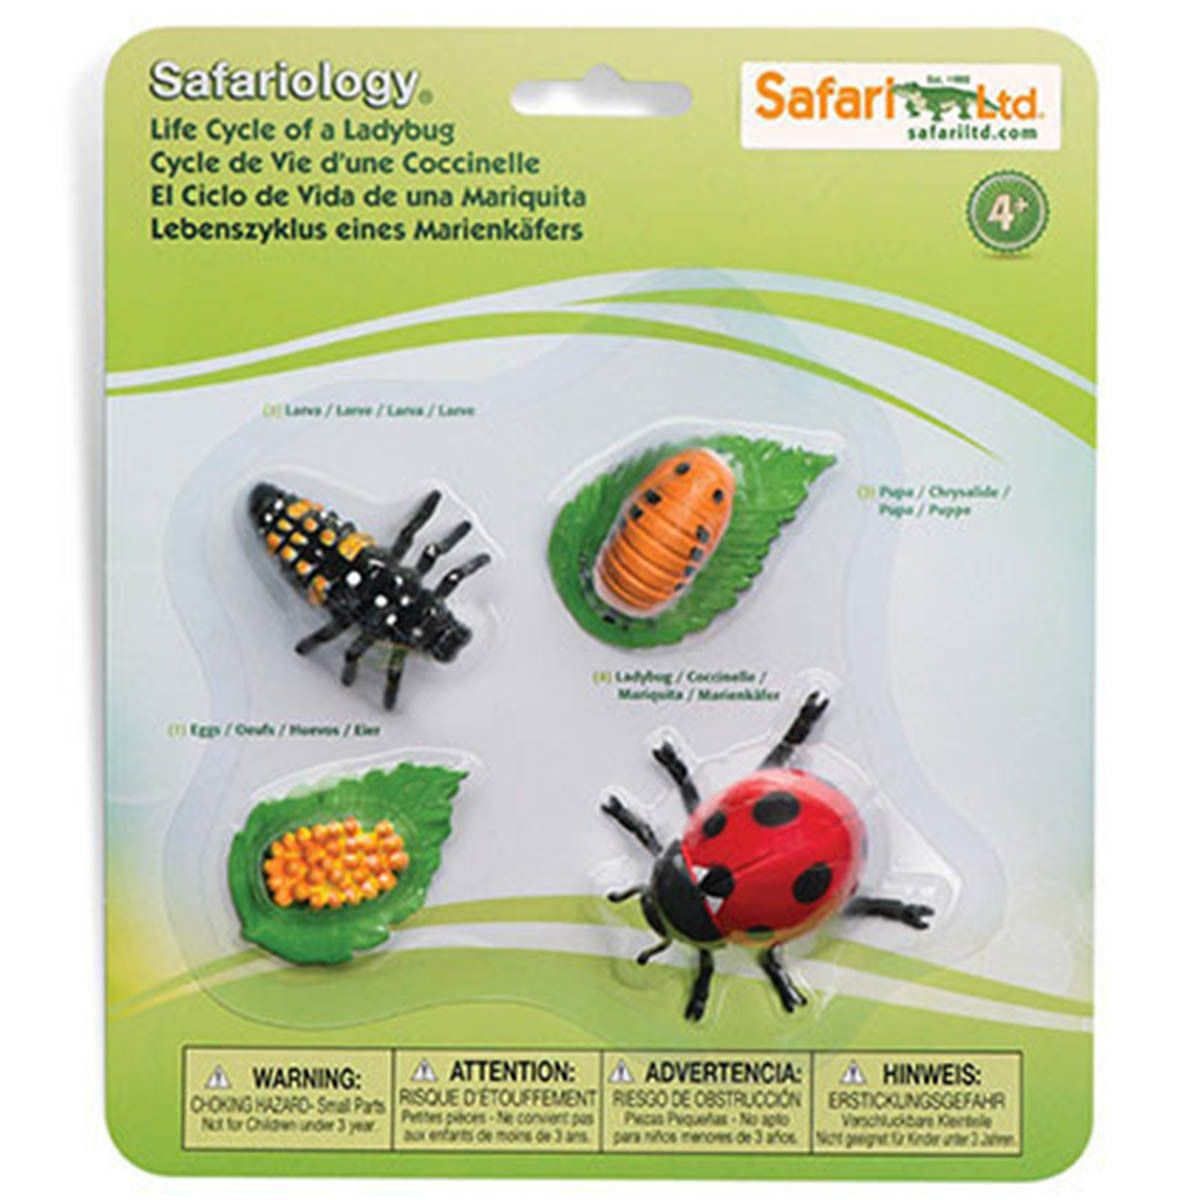 This Is A Really Neat Ladybug Set Of Figures For The Kids